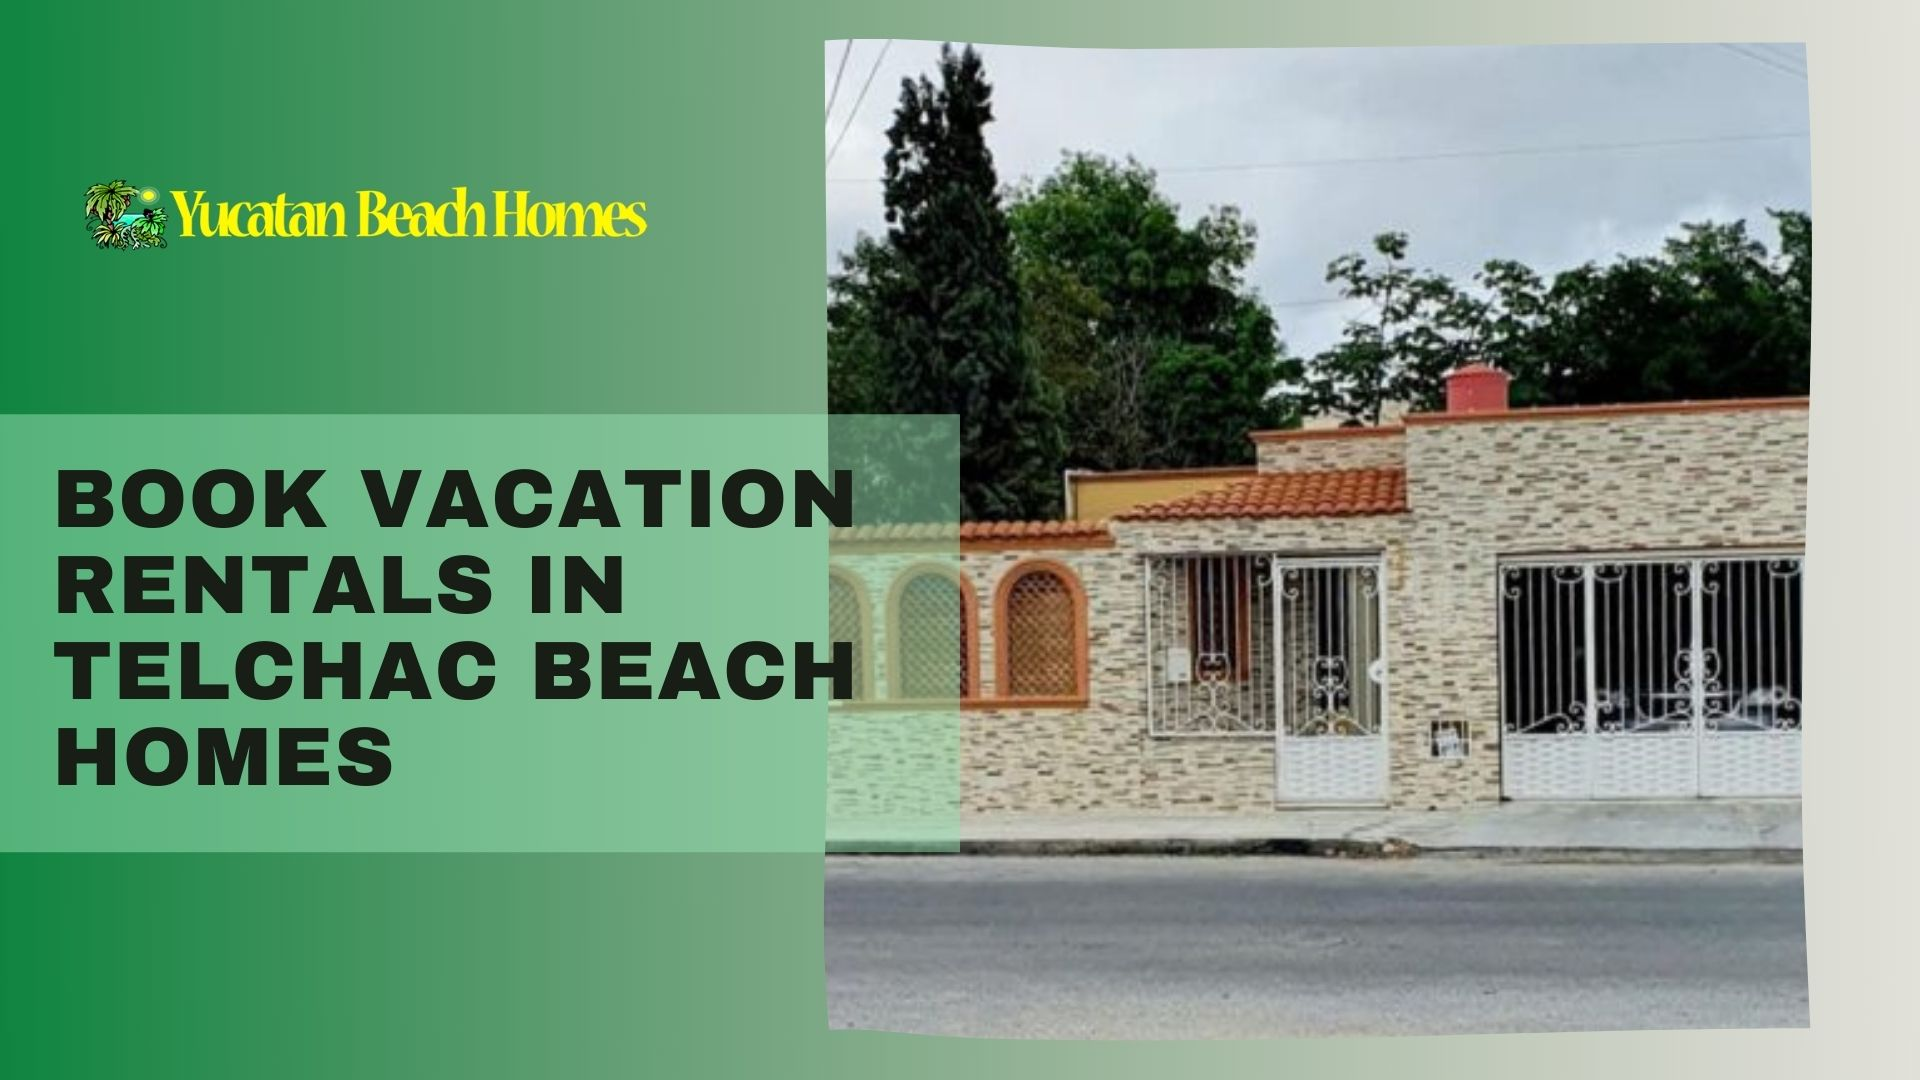 Book Vacation Rentals in Telchac beach homes